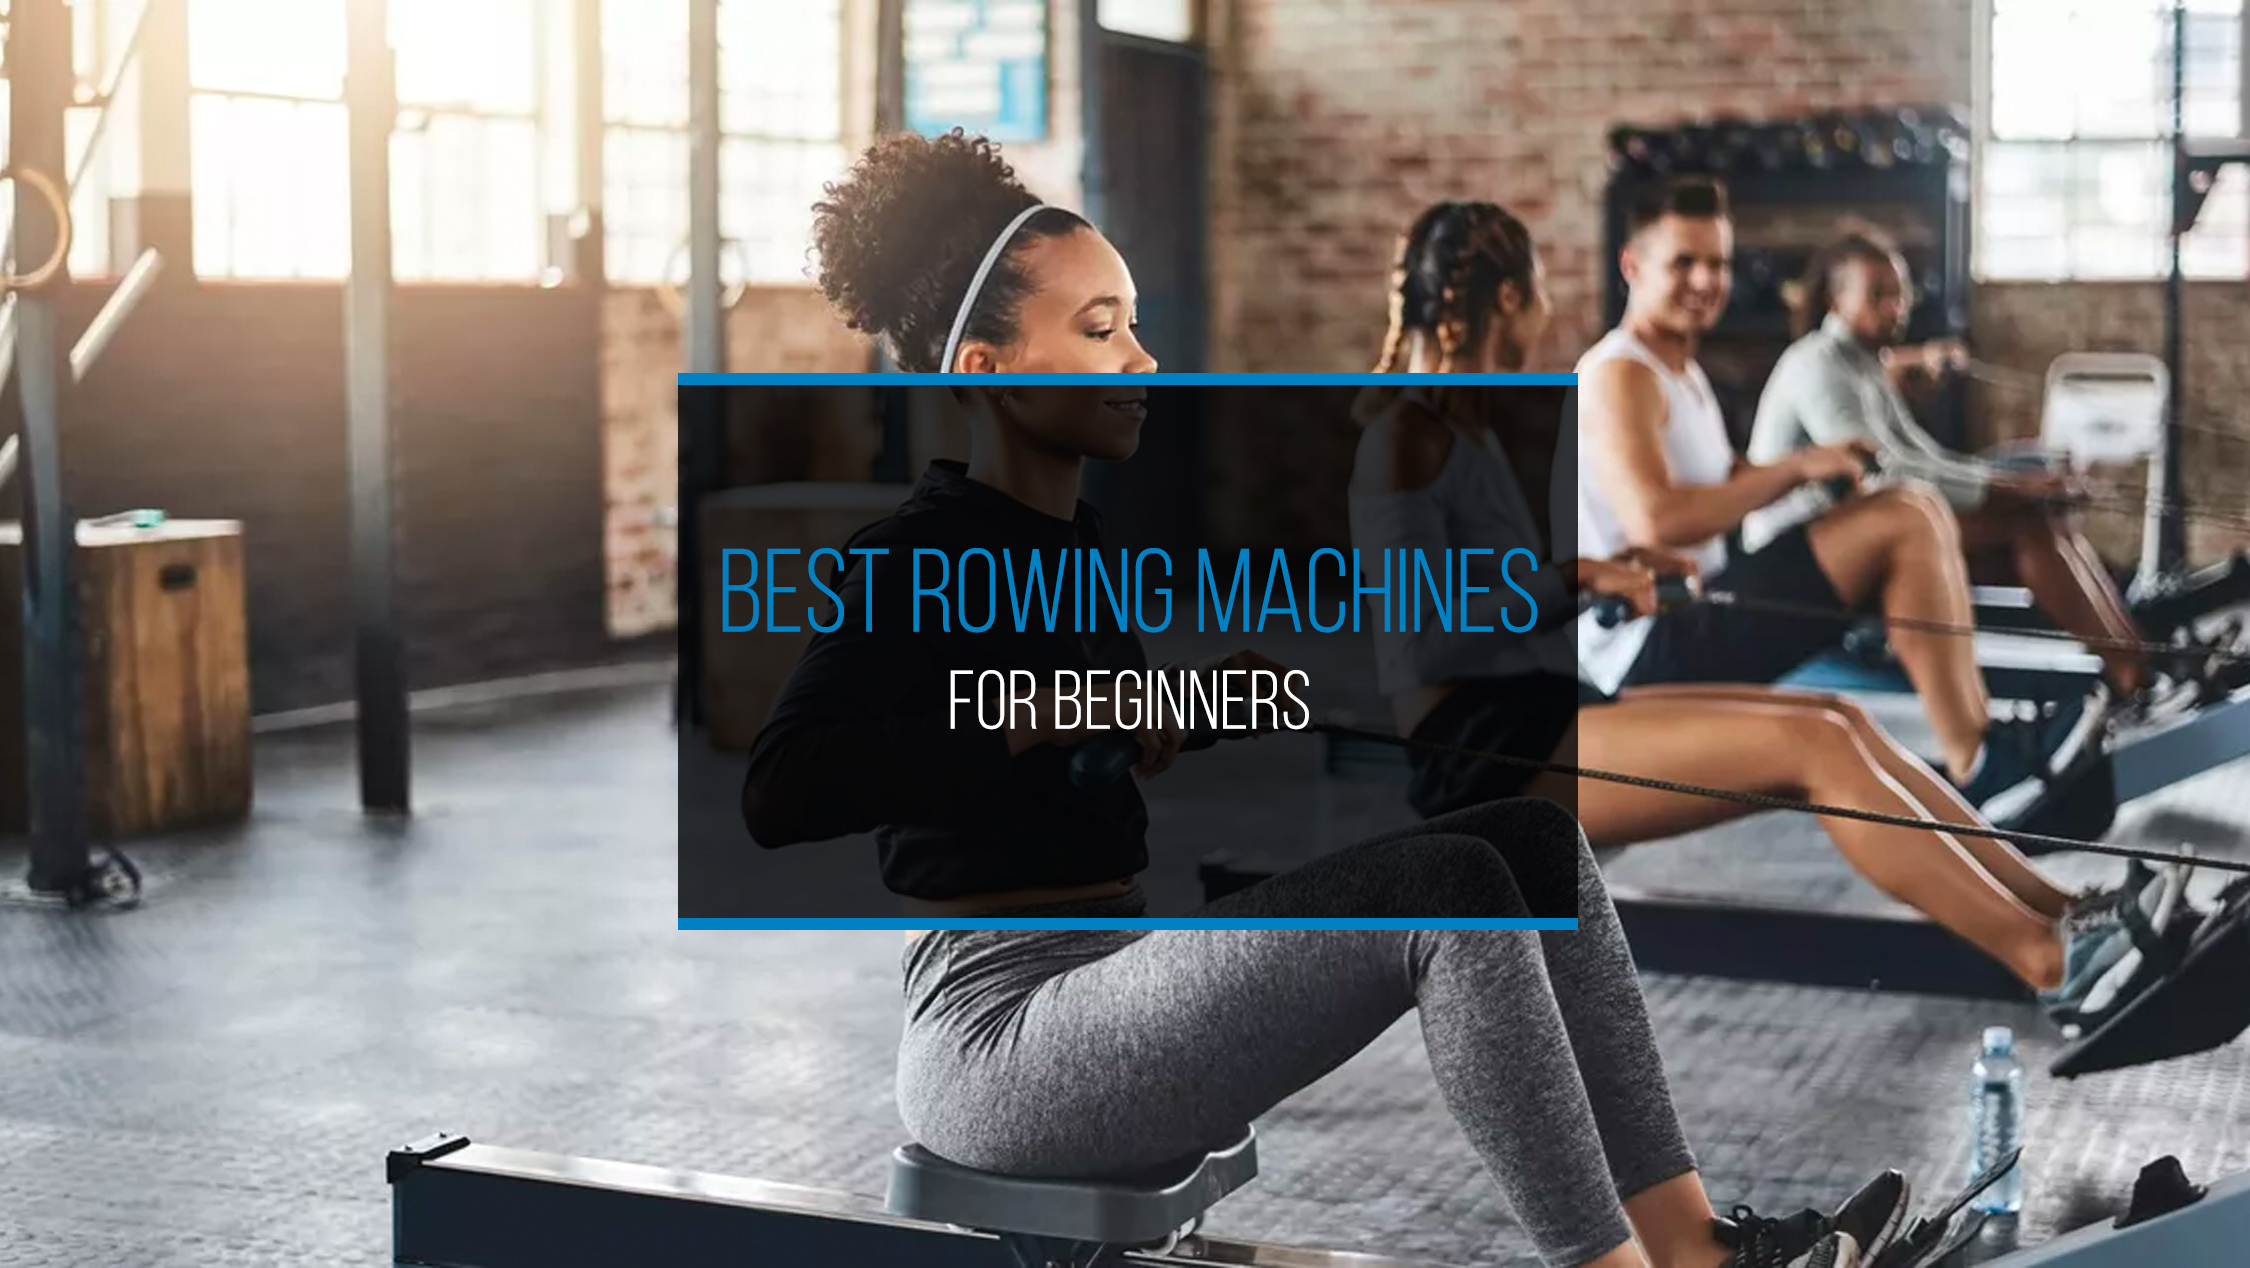 Best Rowing Machines For Beginners - WP